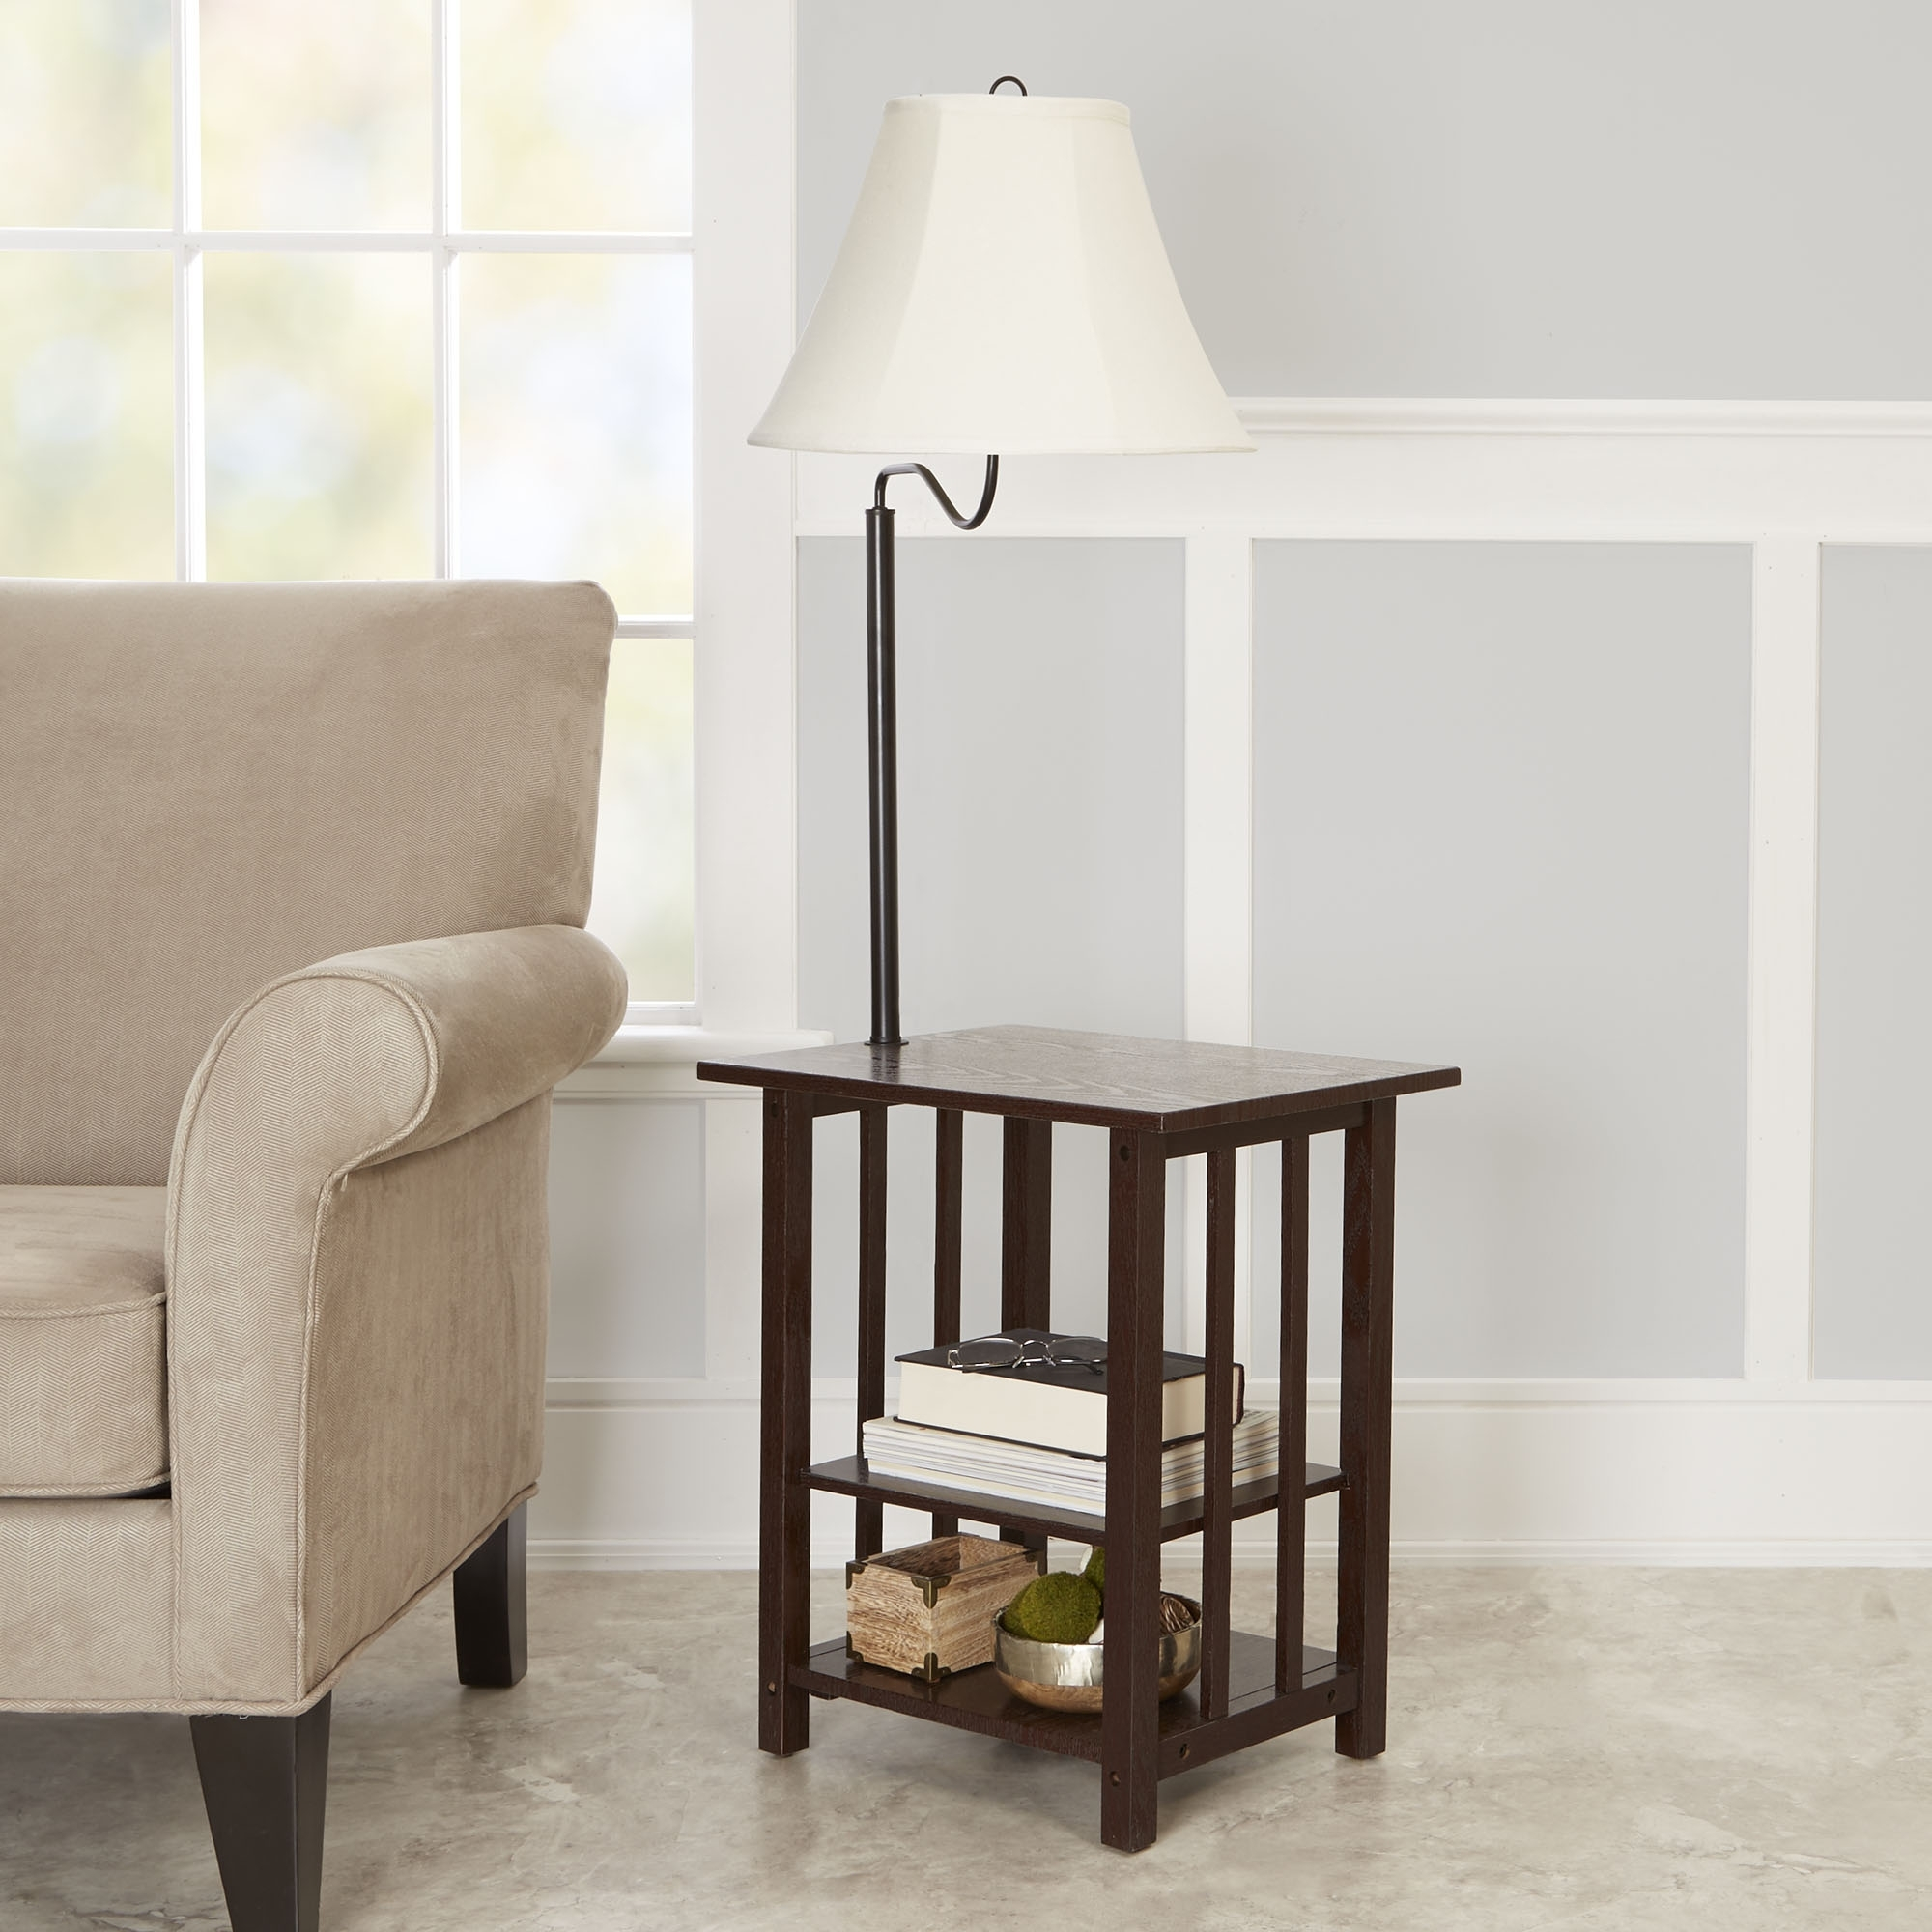 Popular Better Homes & Gardens 3 Rack End Table Floor Lamp, Espresso Finish With Regard To Walmart Living Room Table Lamps (View 8 of 15)